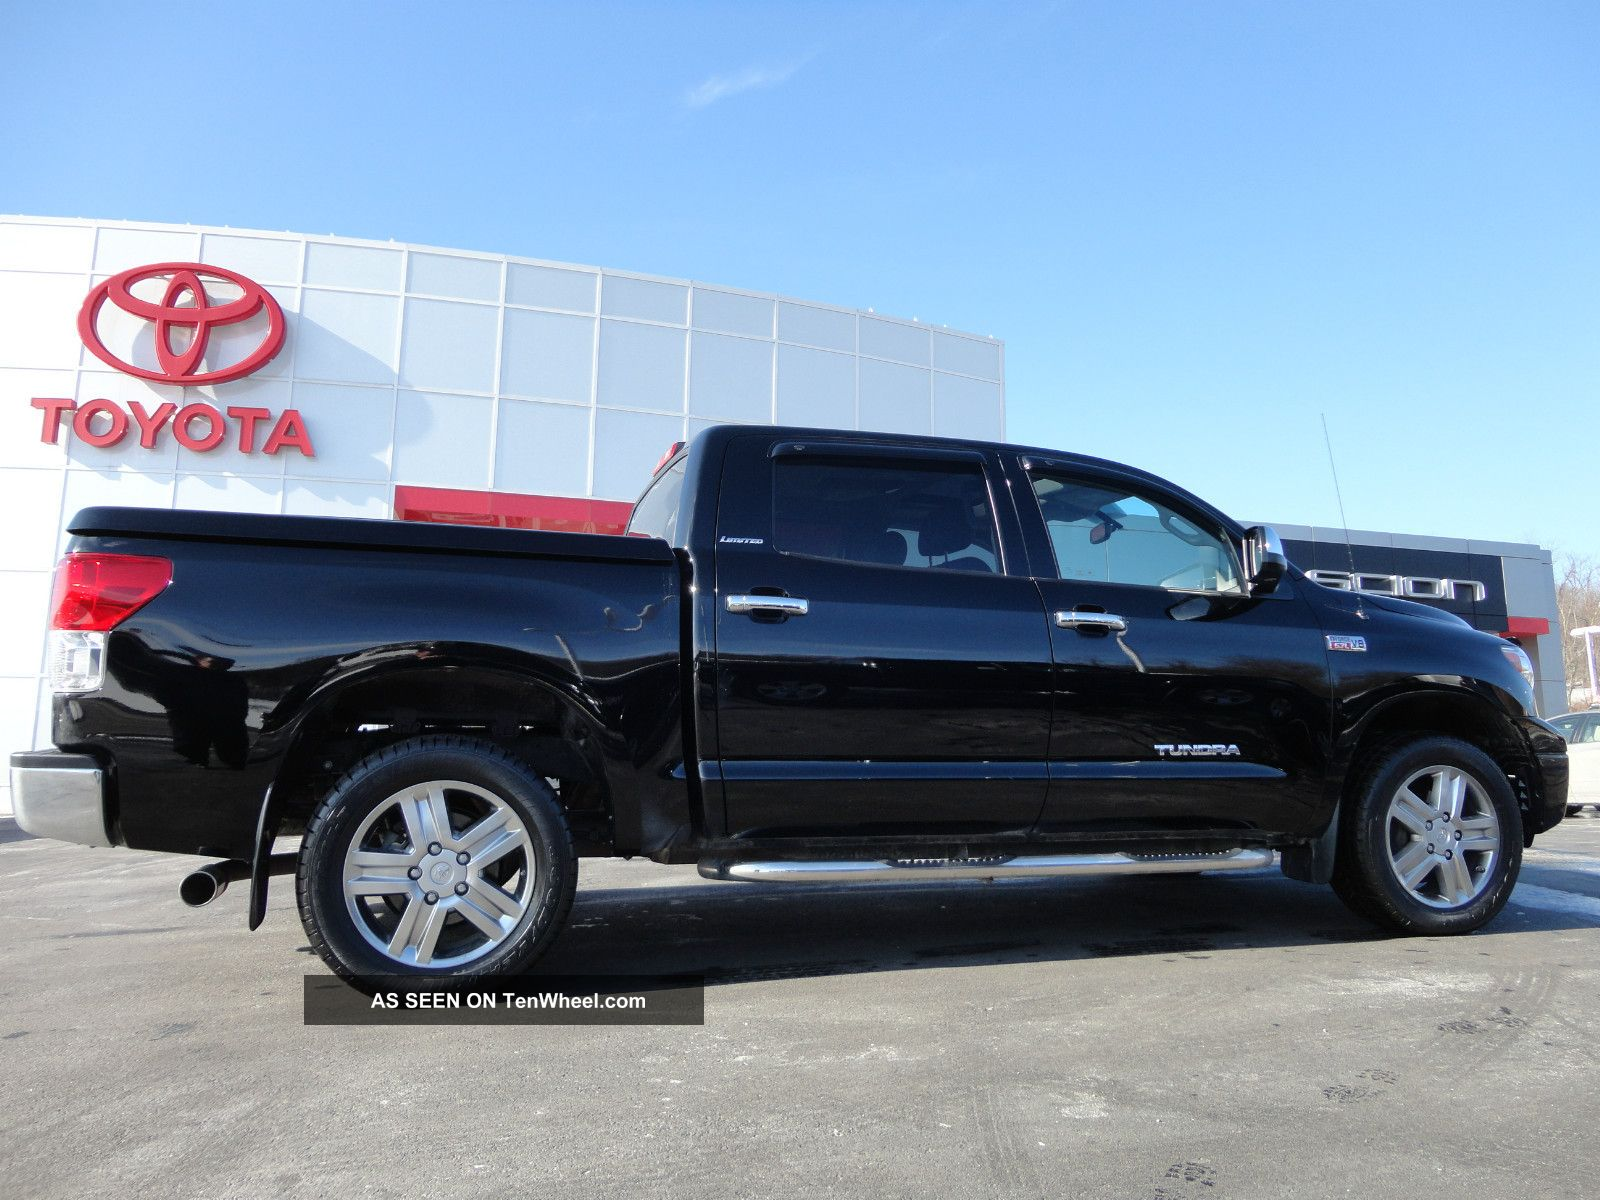 2011 tundra crewmax 5 7l 4x4 limited roof 1 owner toyota video 4wd. Black Bedroom Furniture Sets. Home Design Ideas